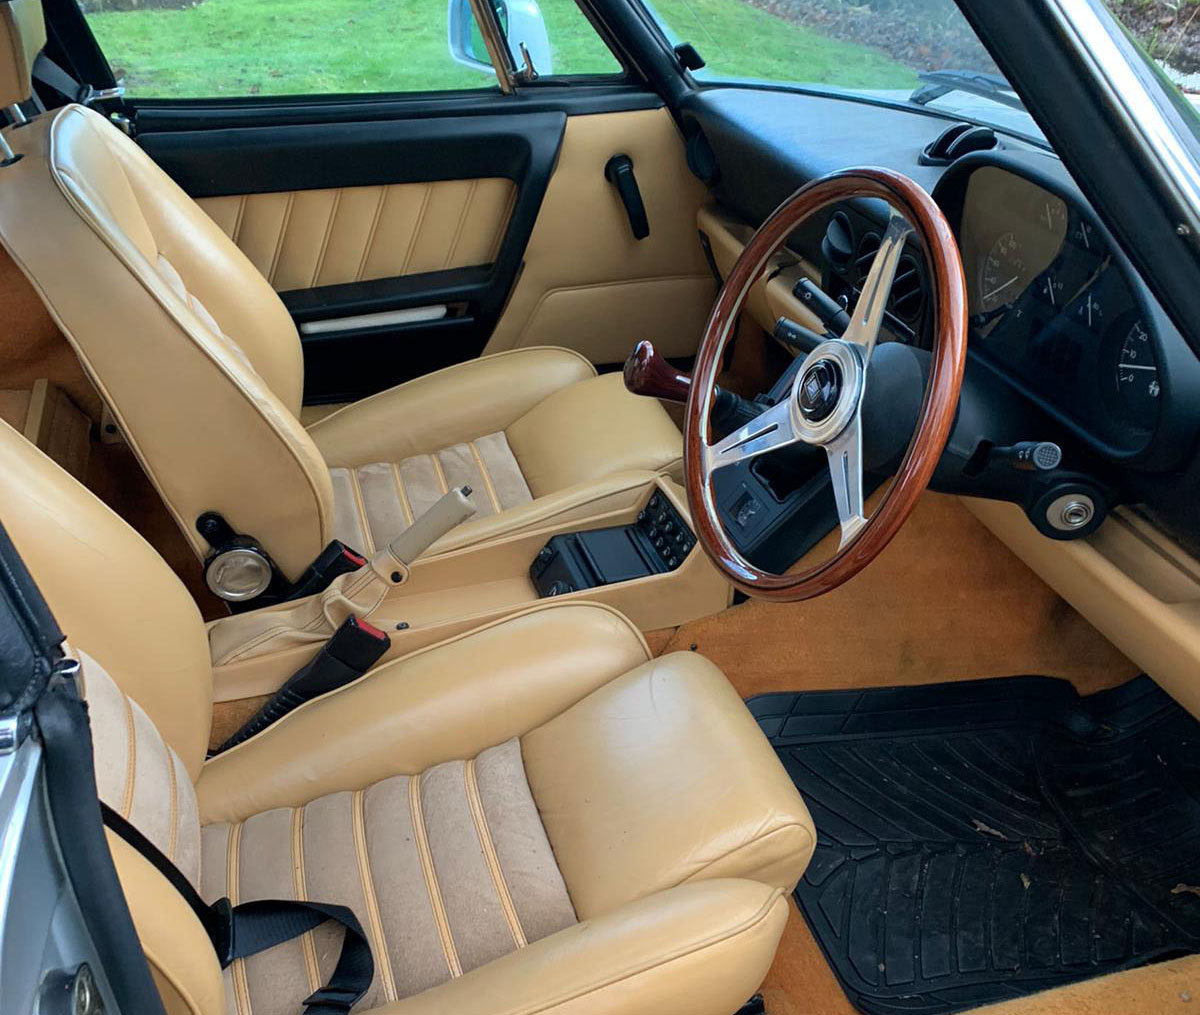 1990 Alfa Romeo Spider S4 2.0L 22 Feb 2020 For Sale by Auction (picture 3 of 4)